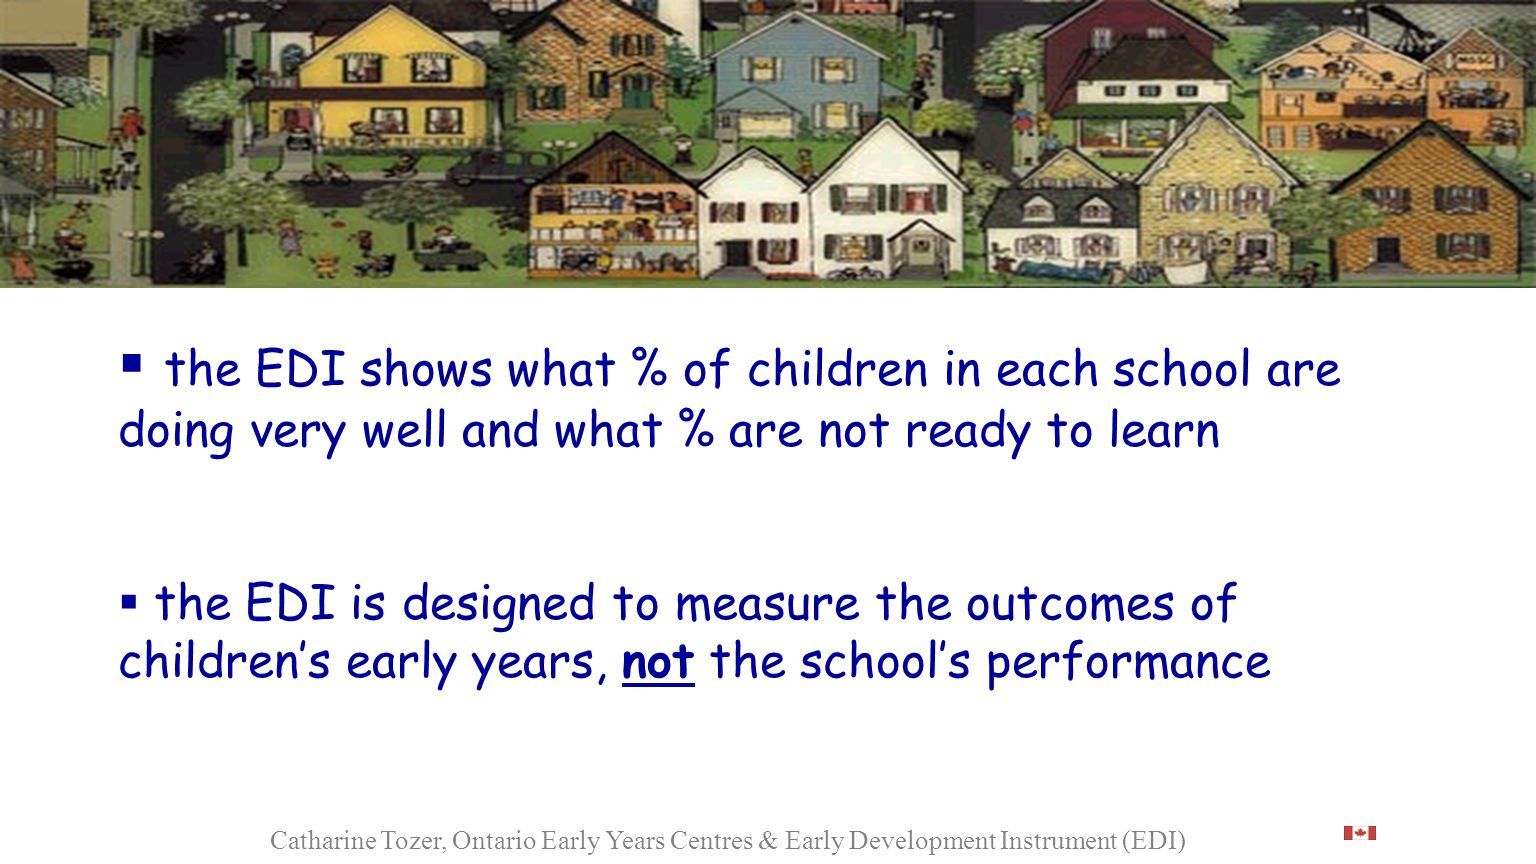  the EDI shows what % of children in each school are doing very well and what % are not ready to learn  the EDI is designed to measure the outcomes of children's early years, not the school's performance Catharine Tozer, Ontario Early Years Centres & Early Development Instrument (EDI)